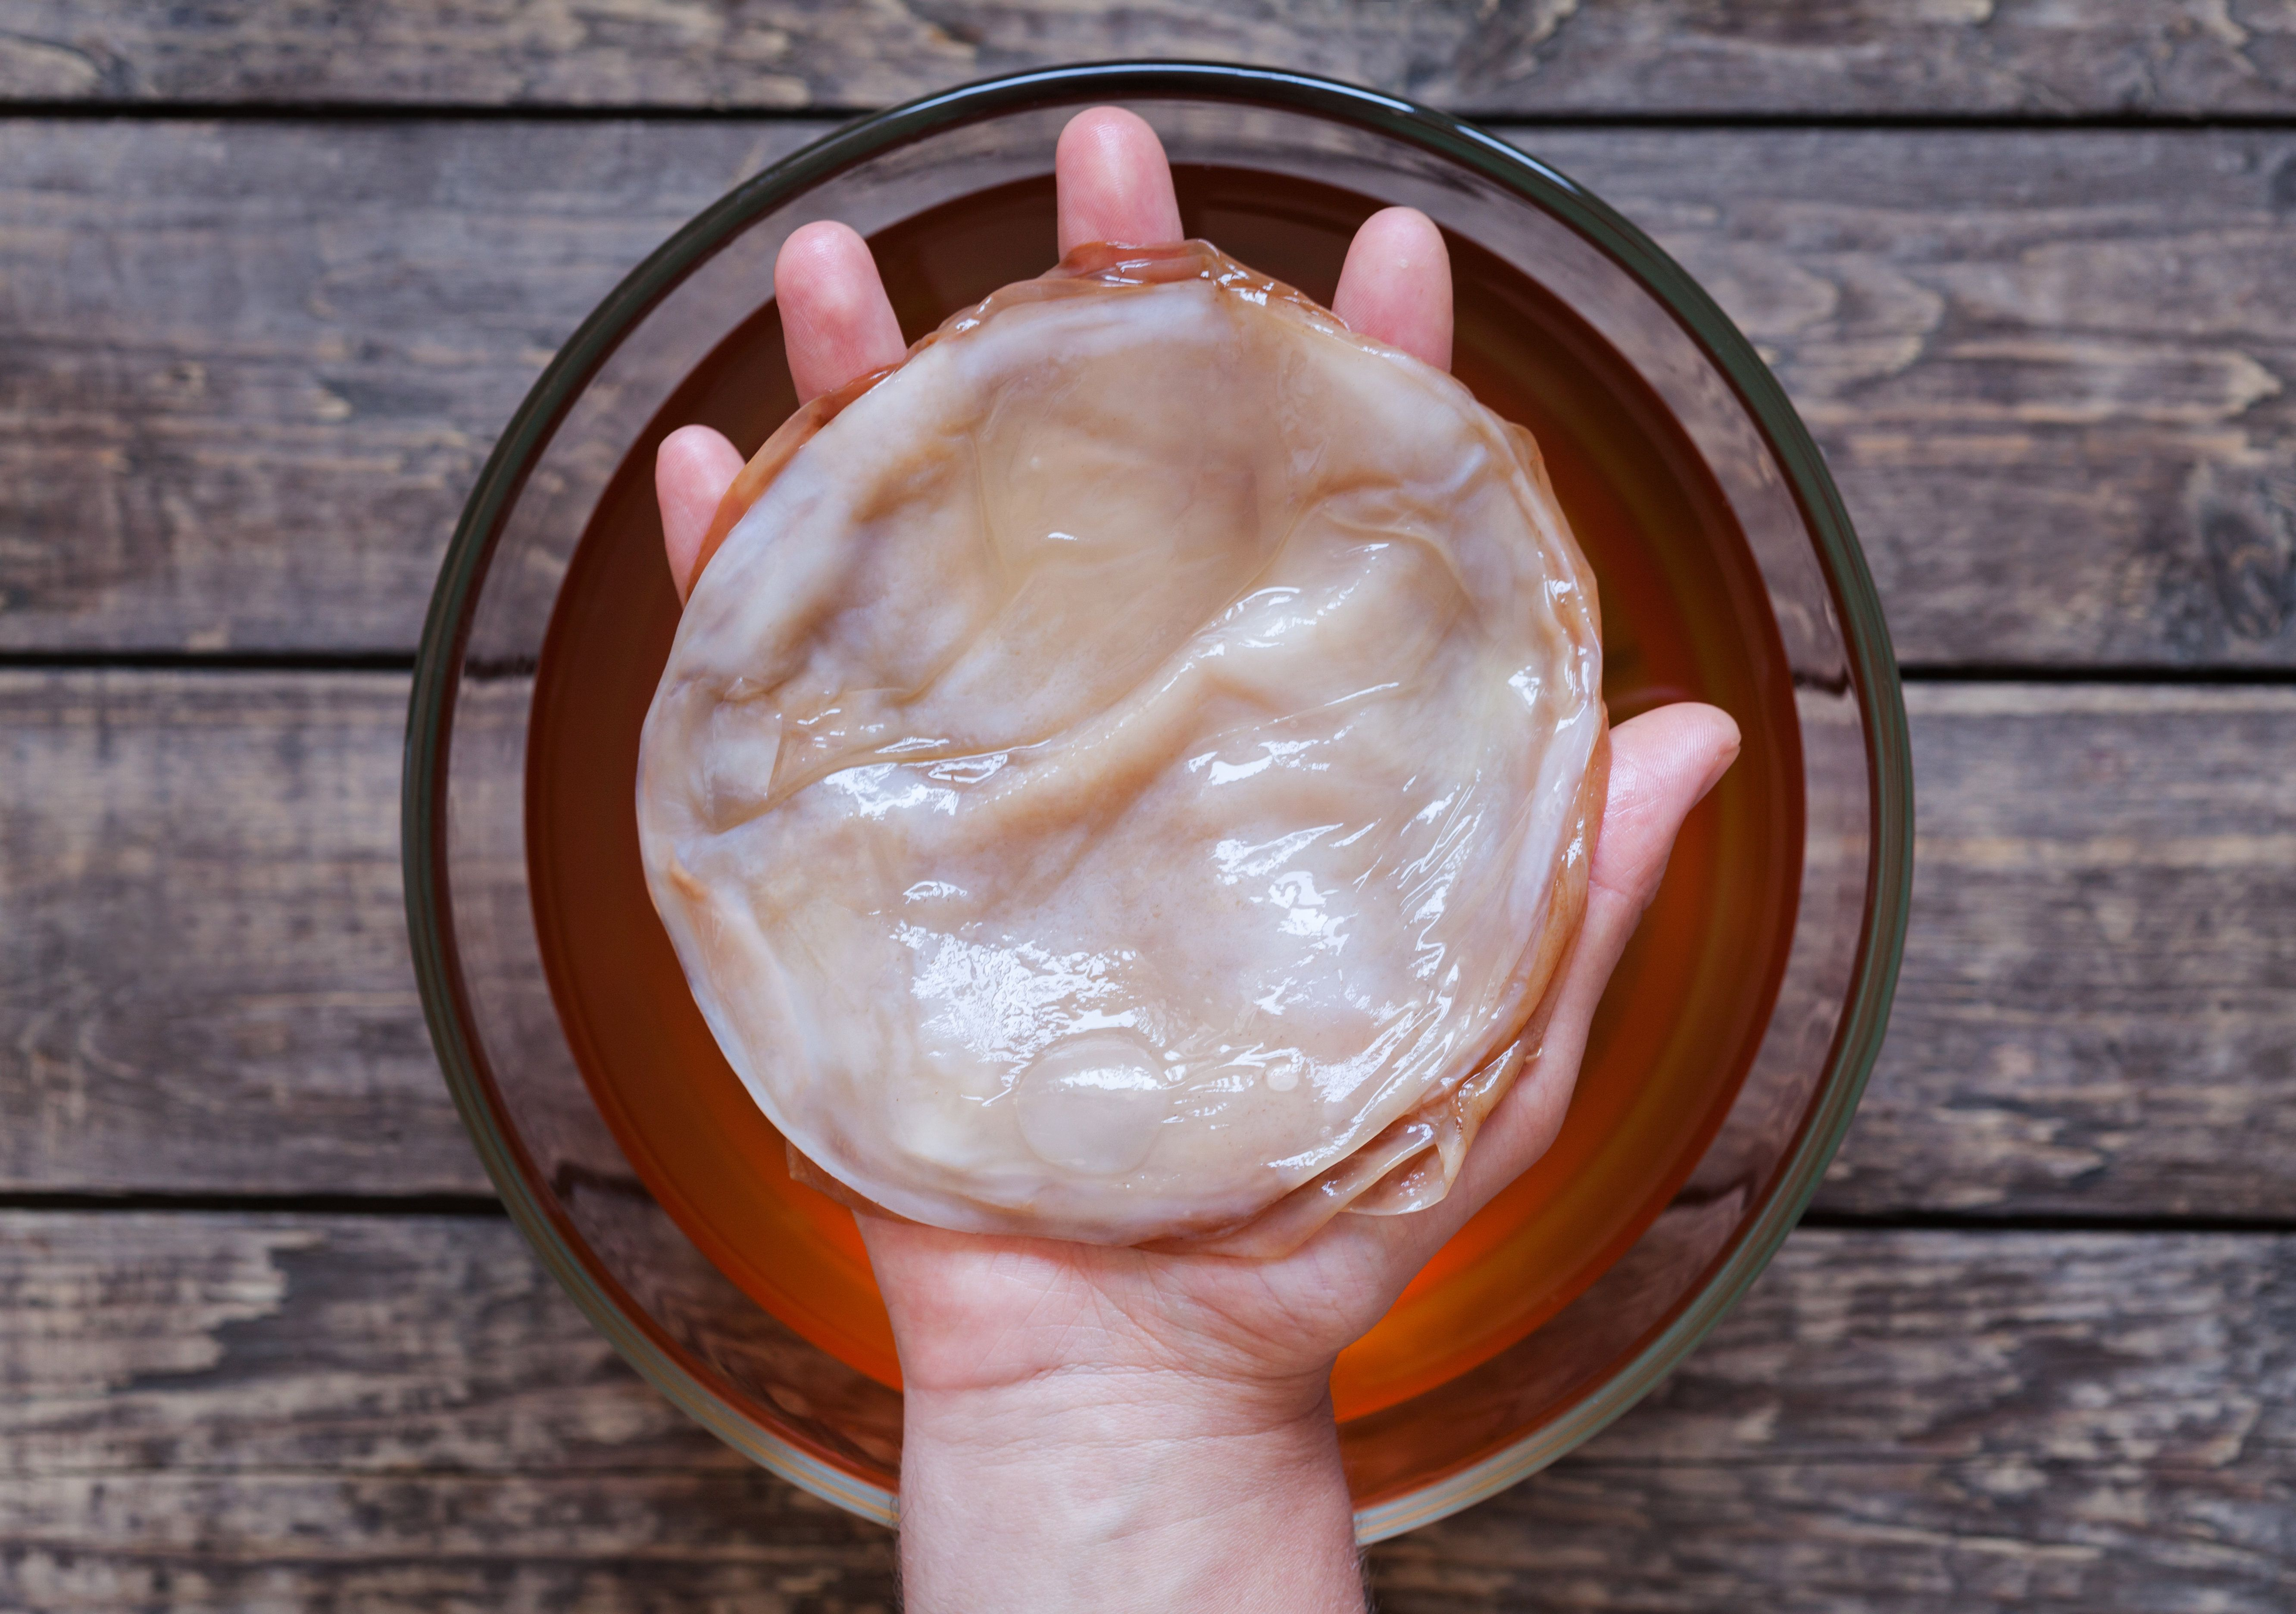 The scoby -- symbiotic cultures of bacteria and yeast -- infuses kombucha with yeast and beneficial bacteria&n